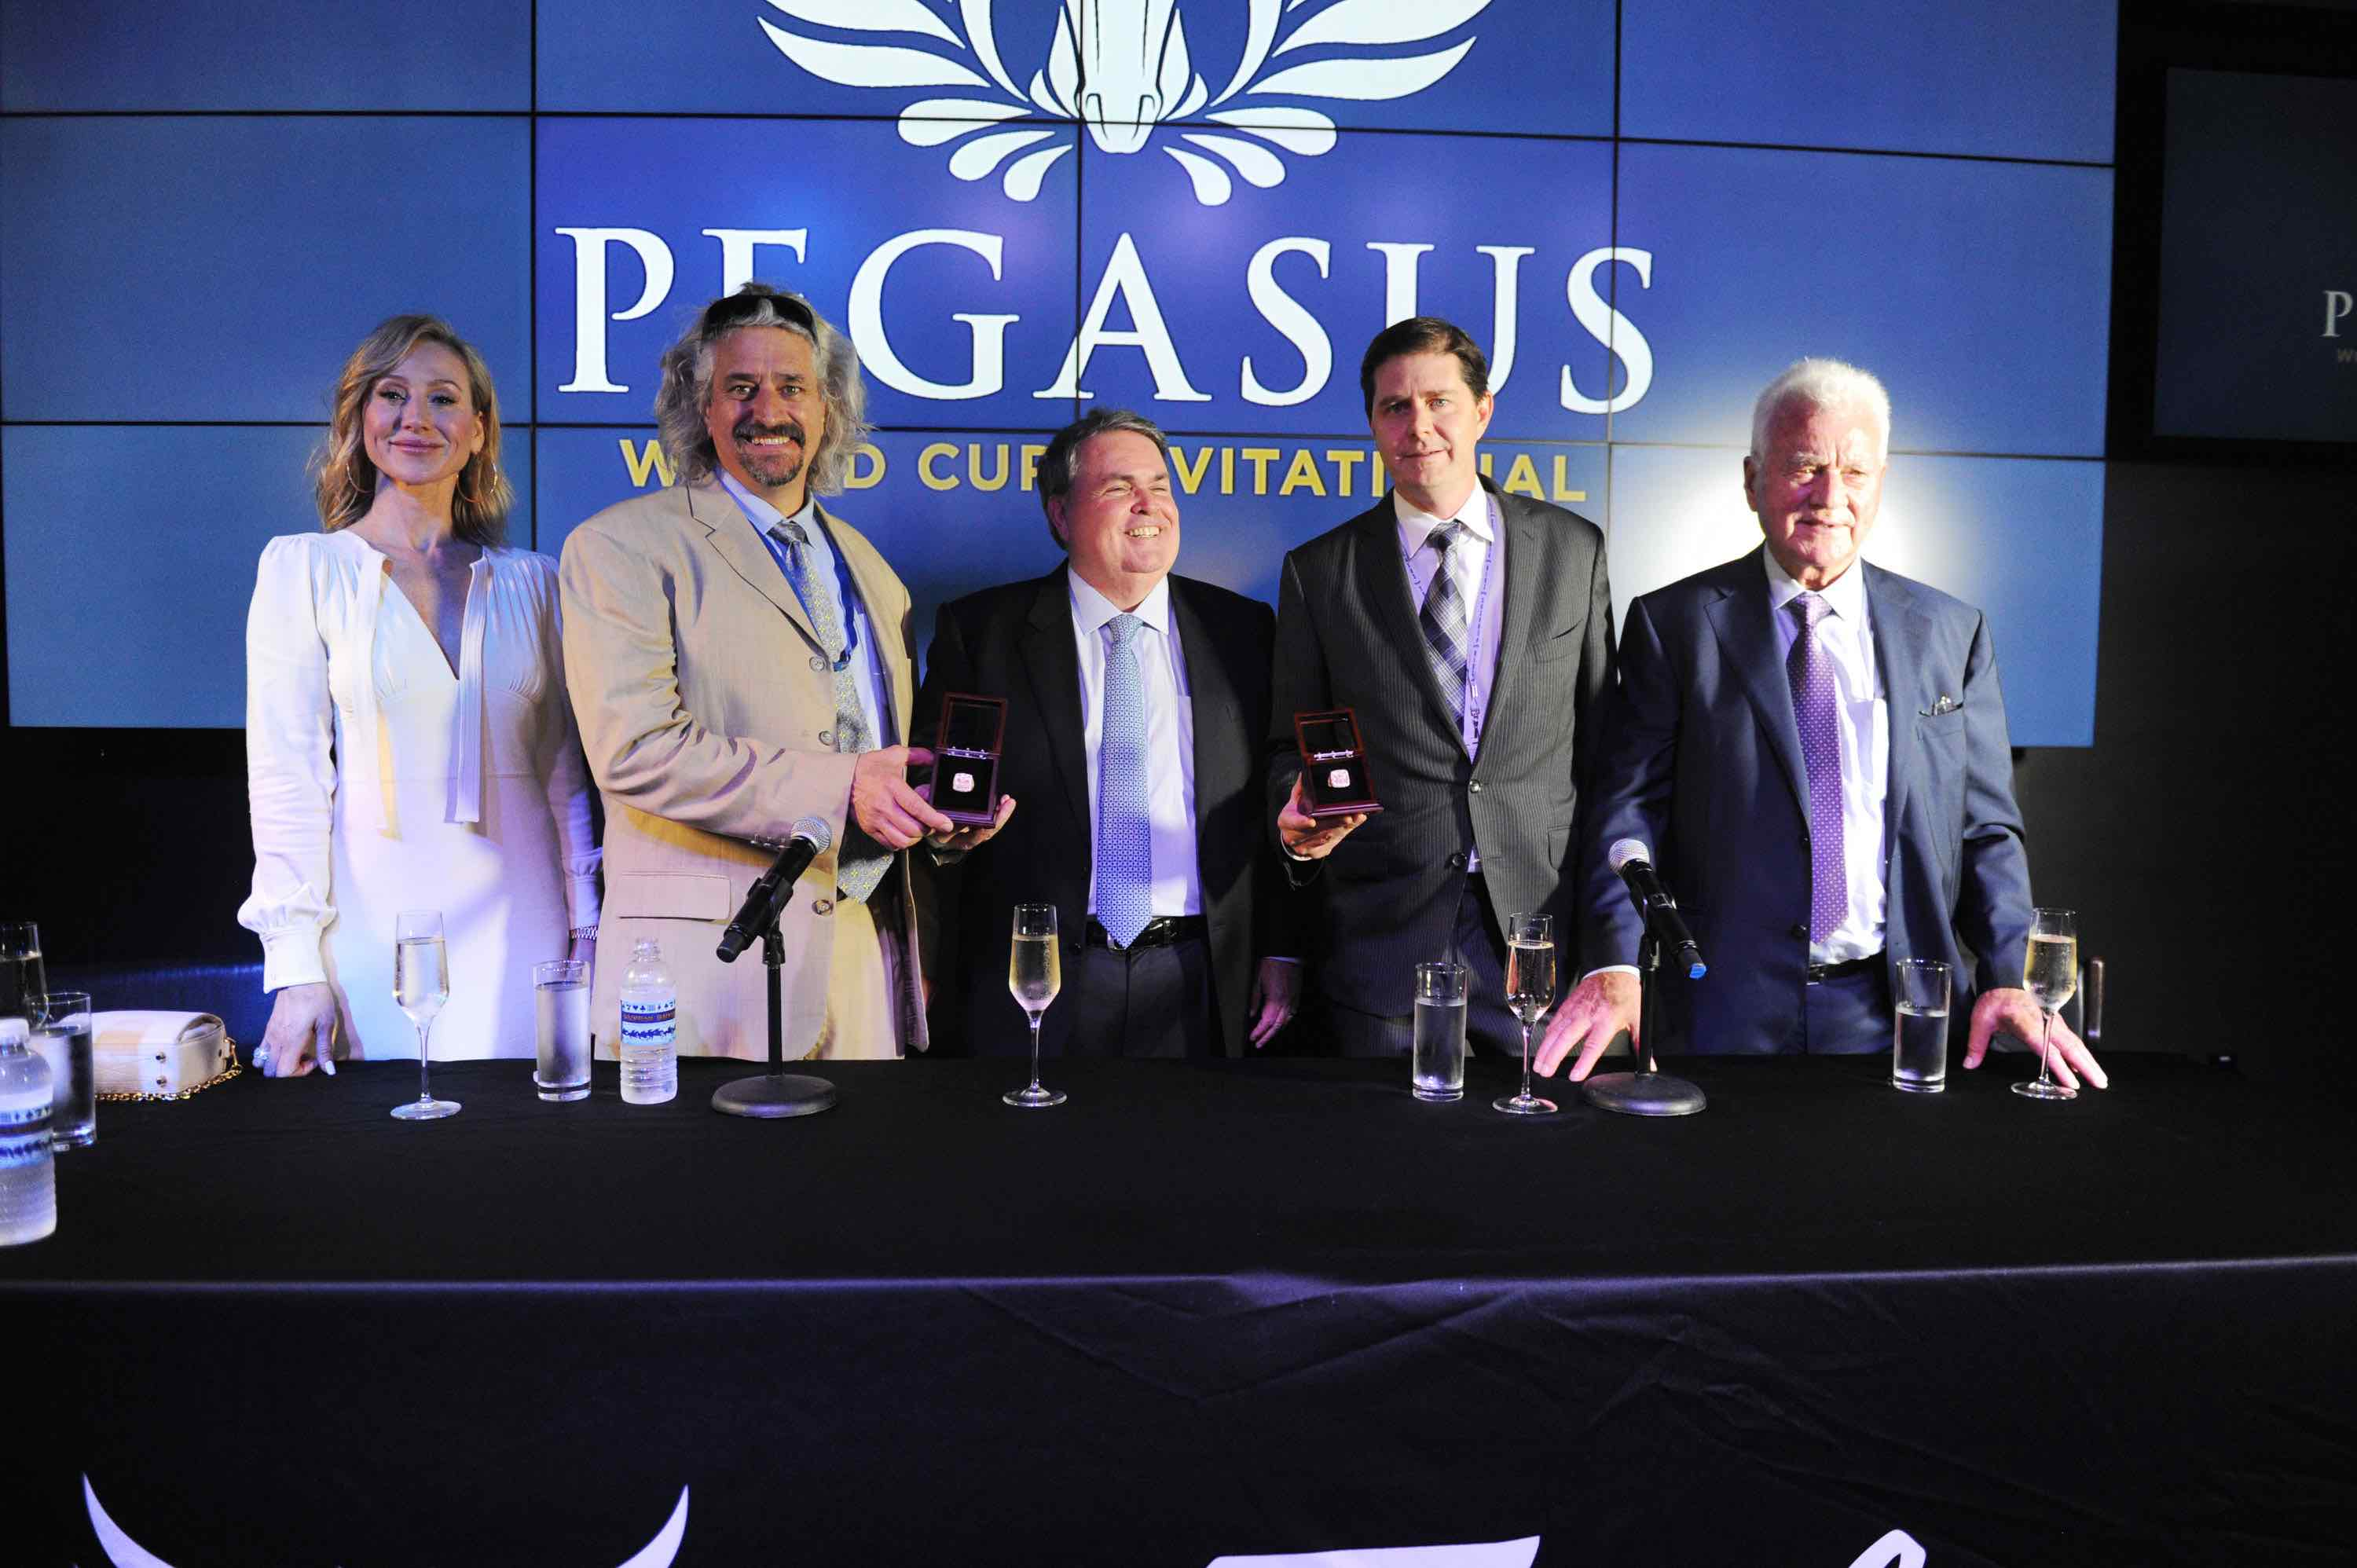 Belinda Stronach, Steve Asmussen, Goncalo Borges Torrealba, Ron Winchell & Frank Stronach at the $16 Million Pegasus World Cup Invitational - Photo Credit World Red Eye